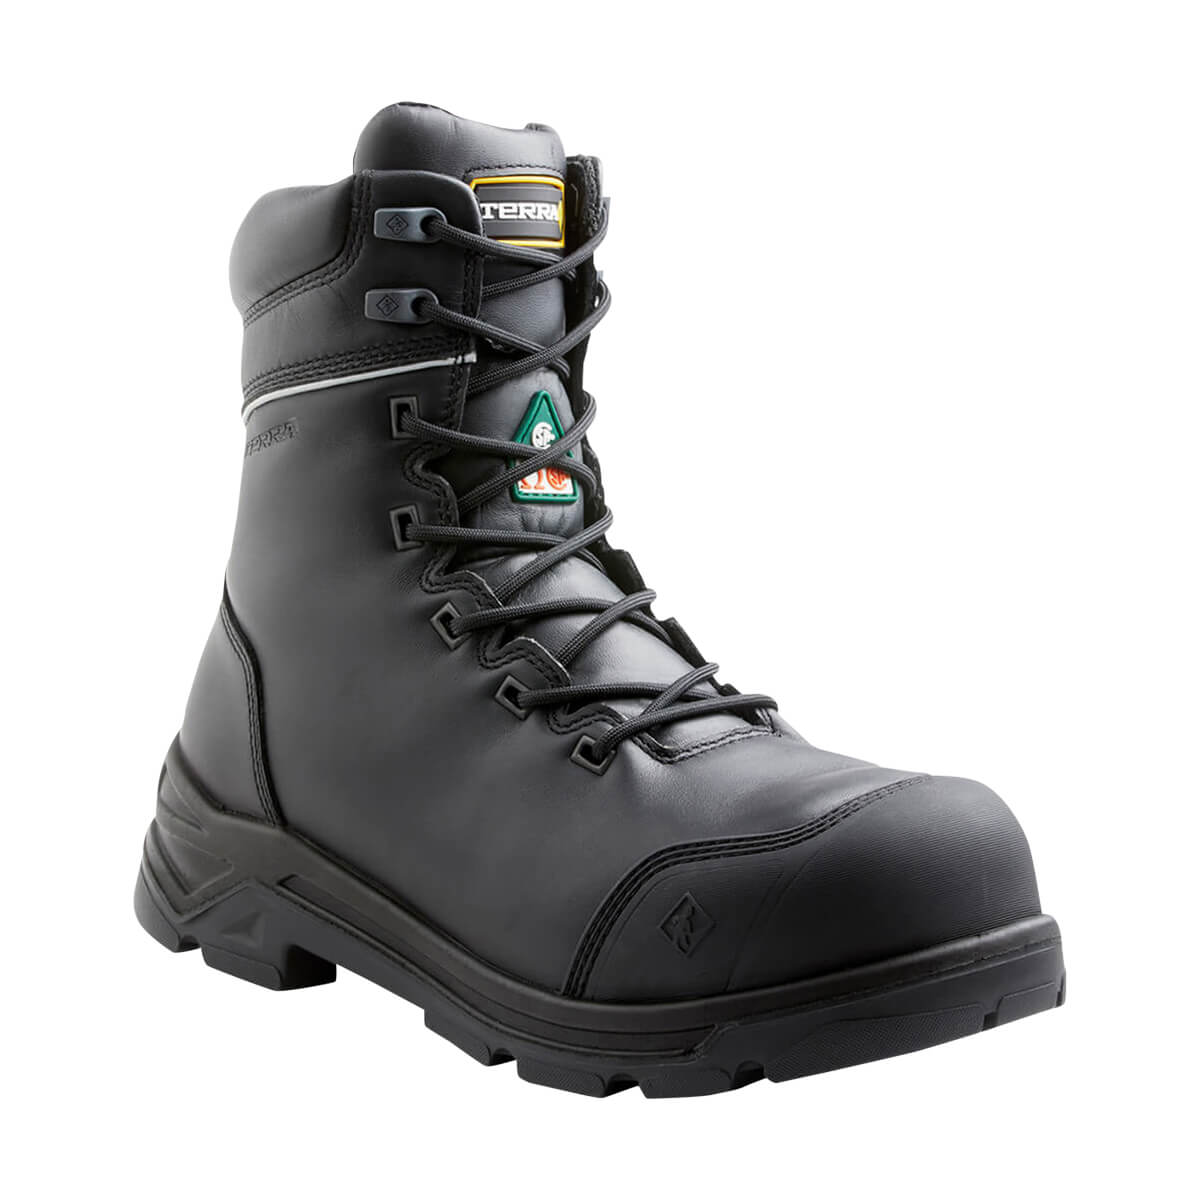 Terra Vertex 8000 Boot - Black